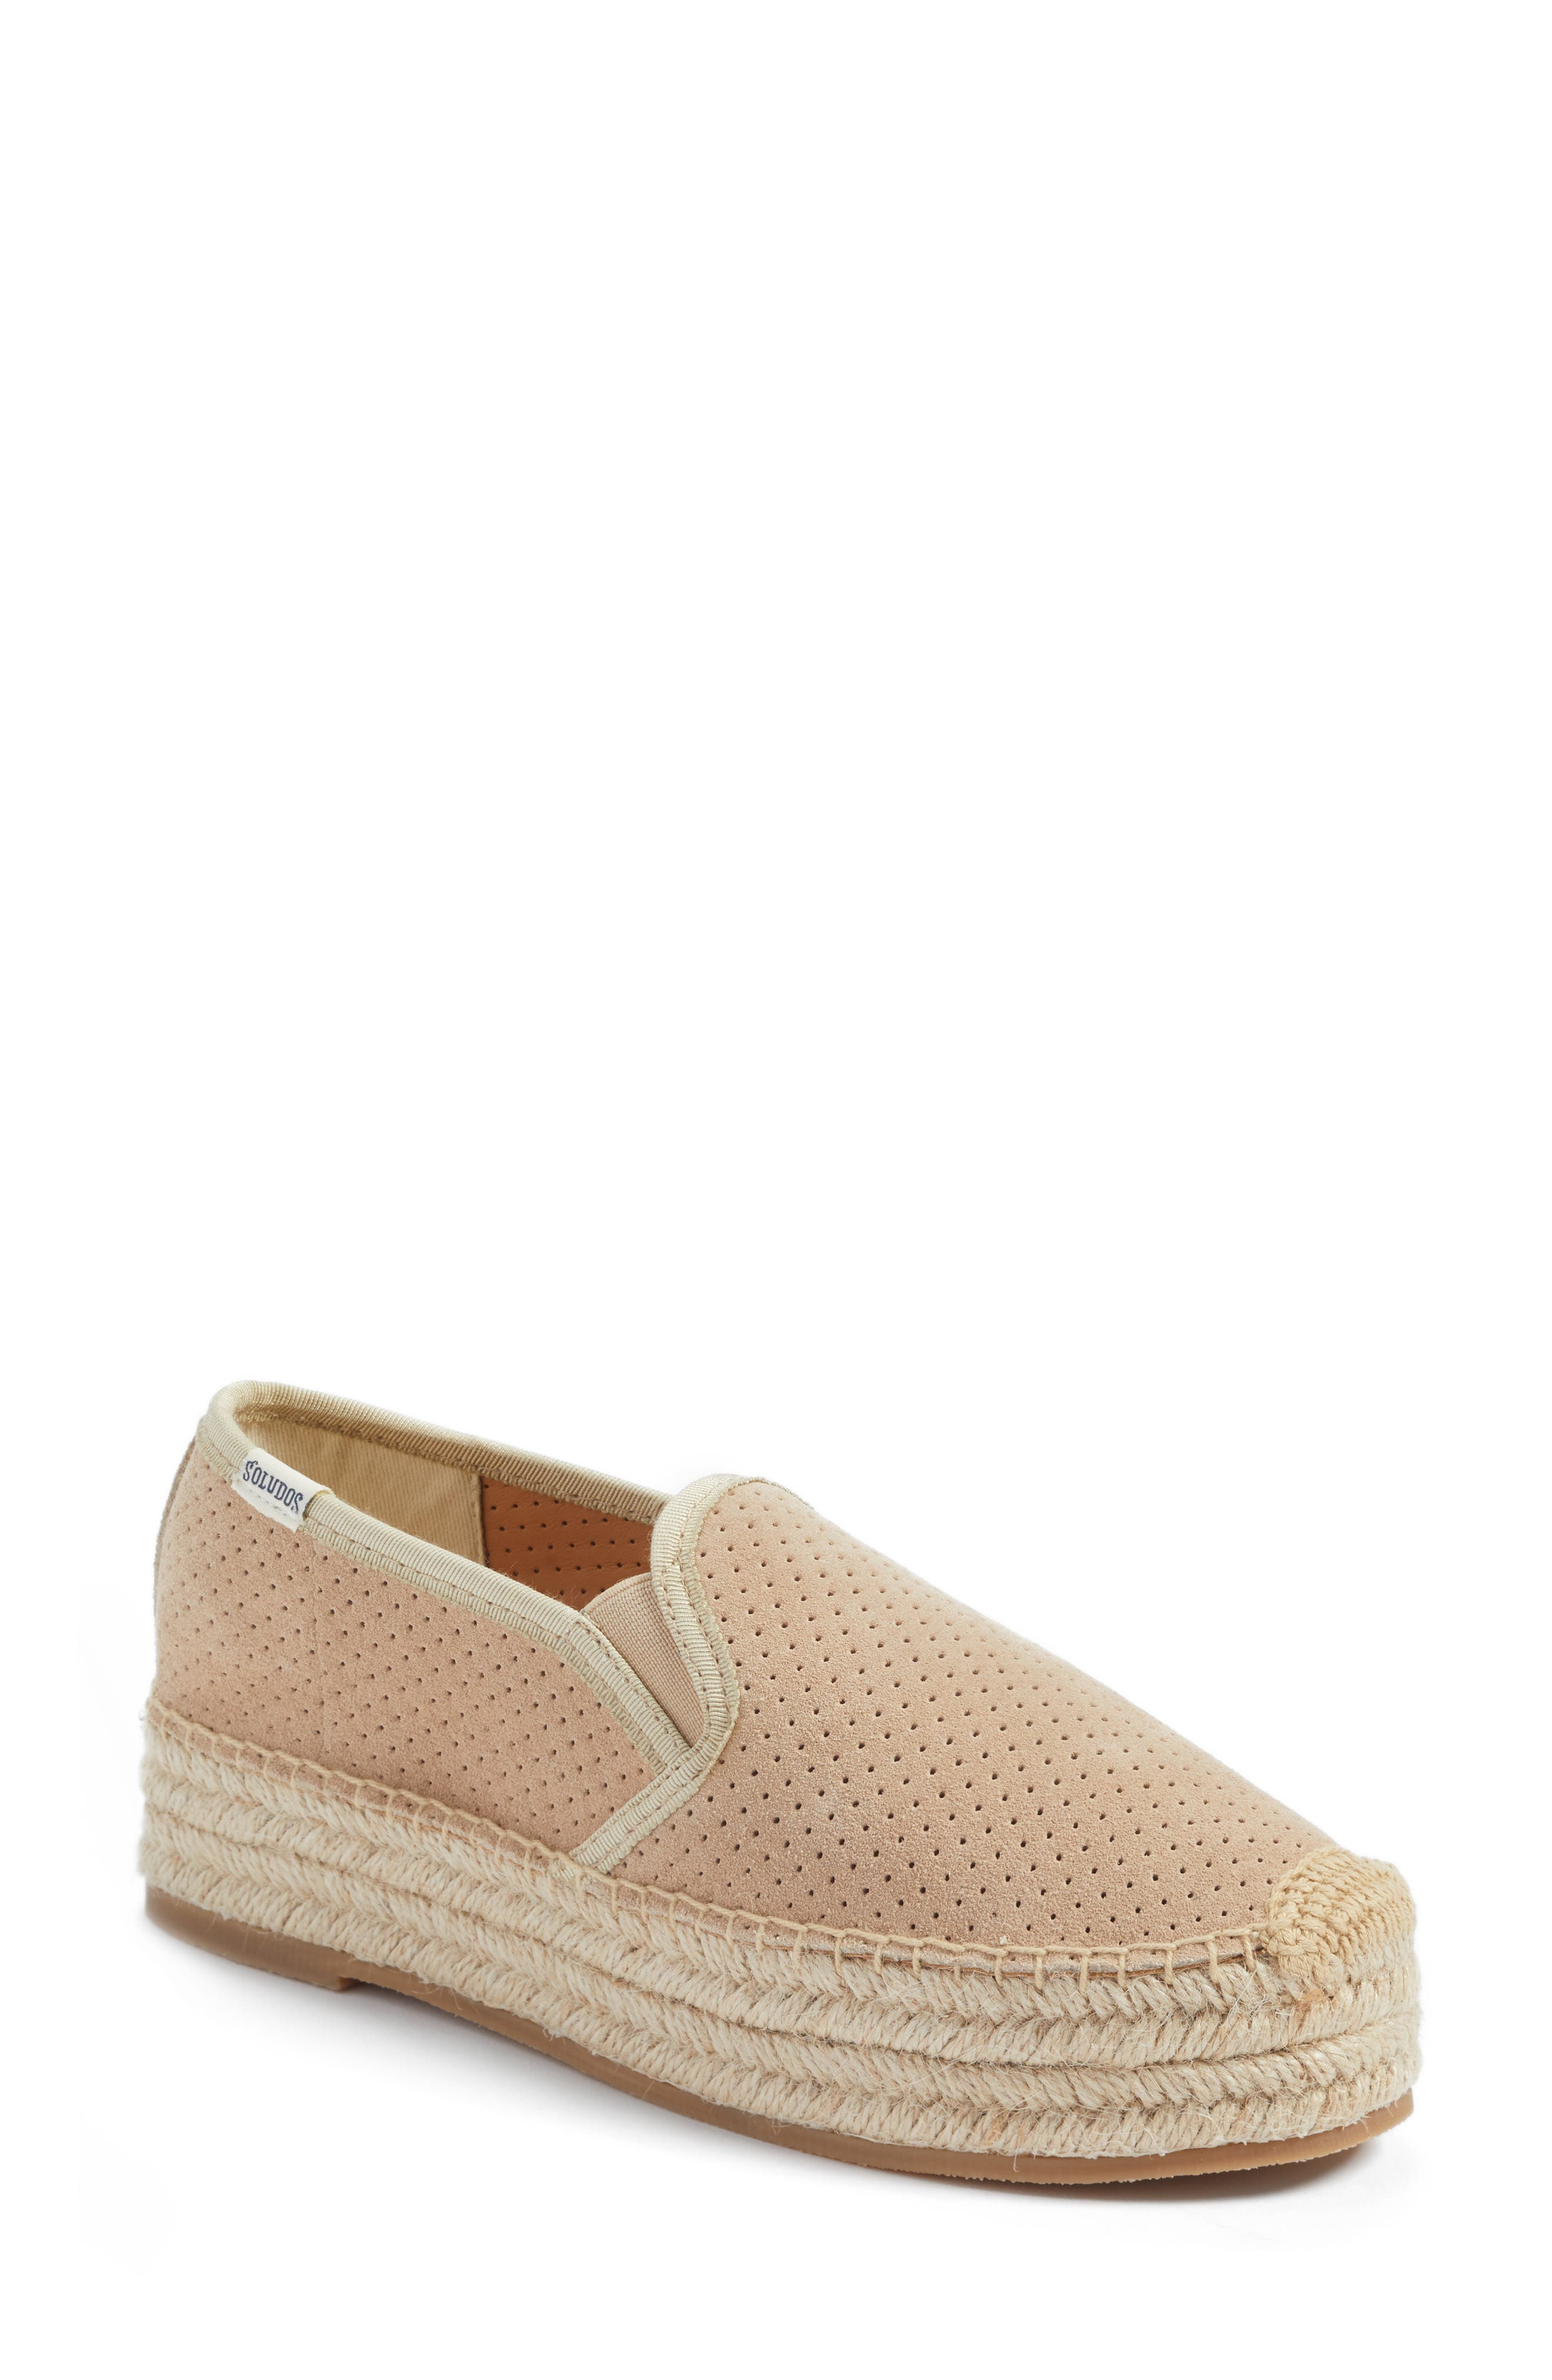 Malibu Perforated Platform Espadrille,                             Main thumbnail 1, color,                             Blush Suede